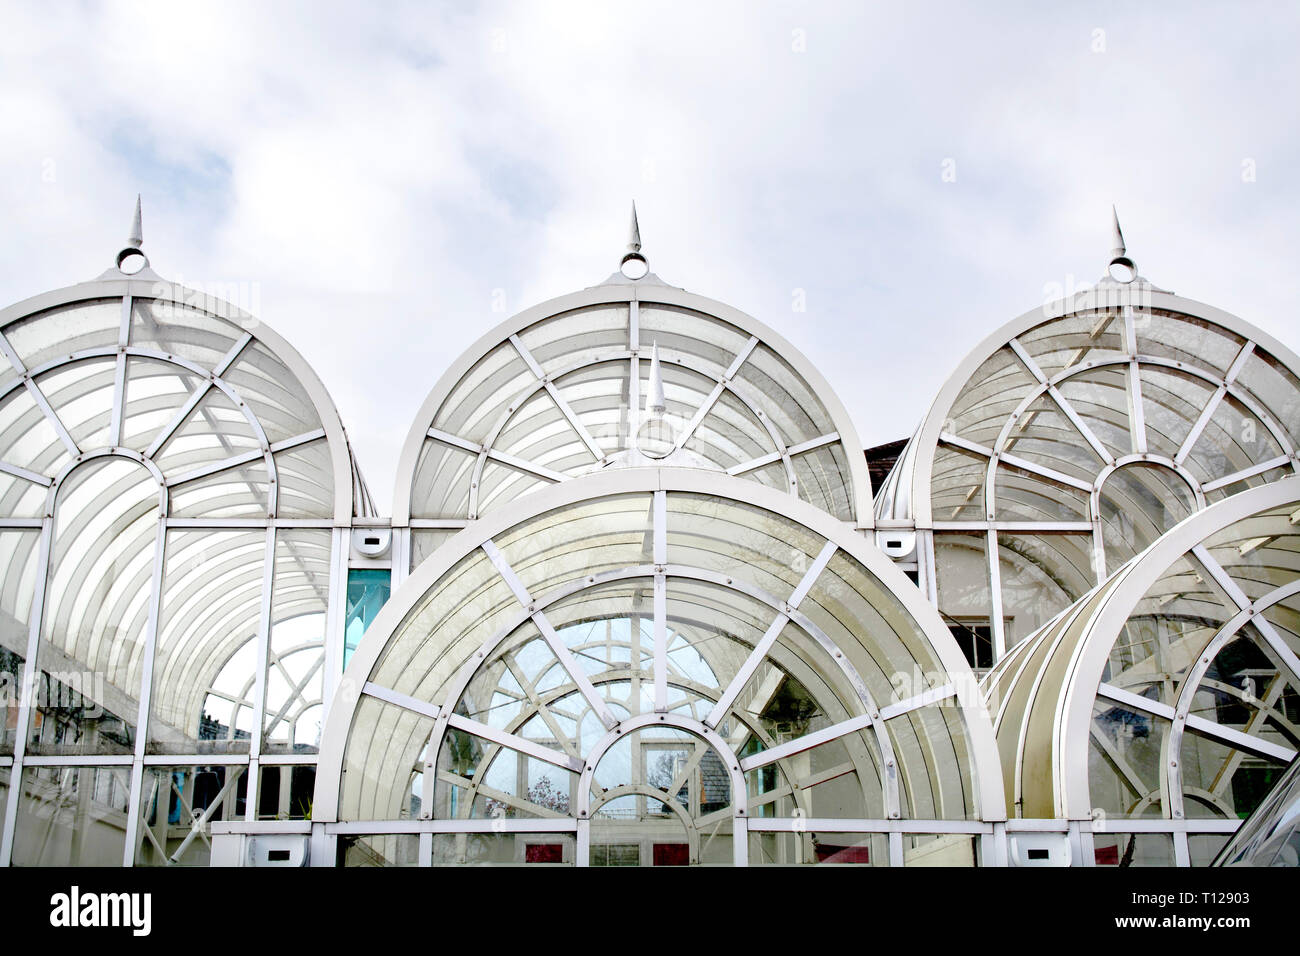 Detail of the Victorian glass dome roof of the entrance of Birmingham's Botanical Garden (UK) Stock Photo